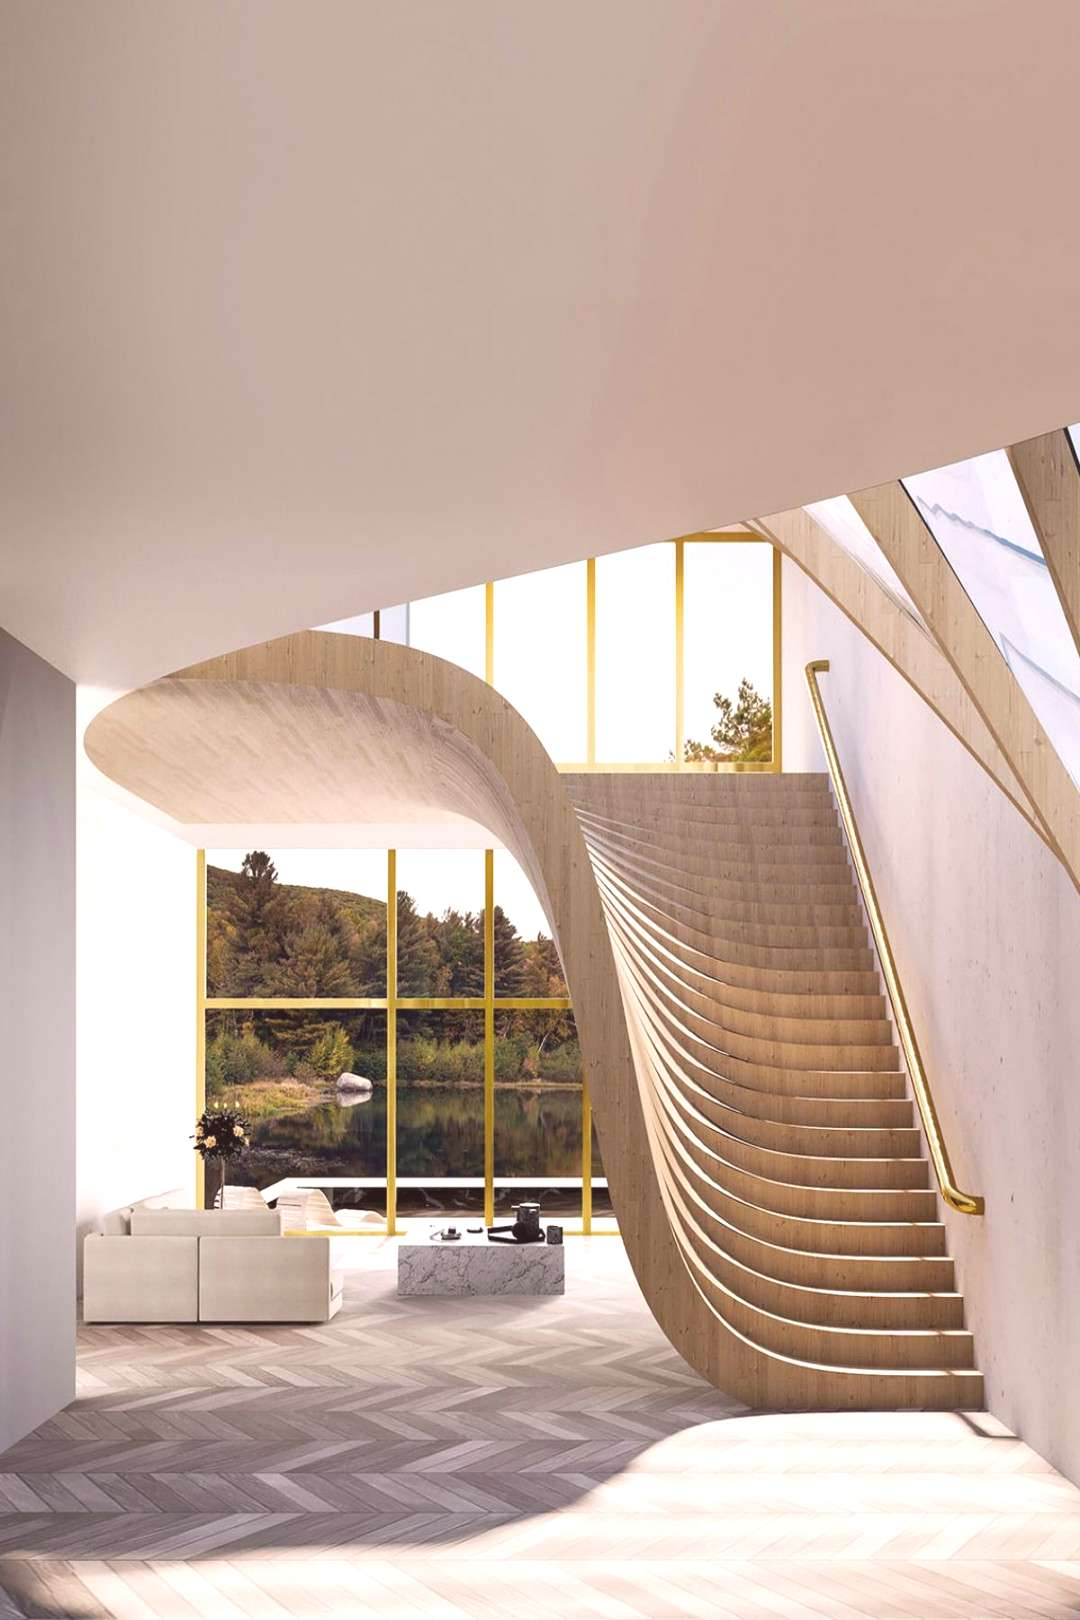 Extraordinary house located by the lake Türlersee in Switzerland Extraordinary house located by th